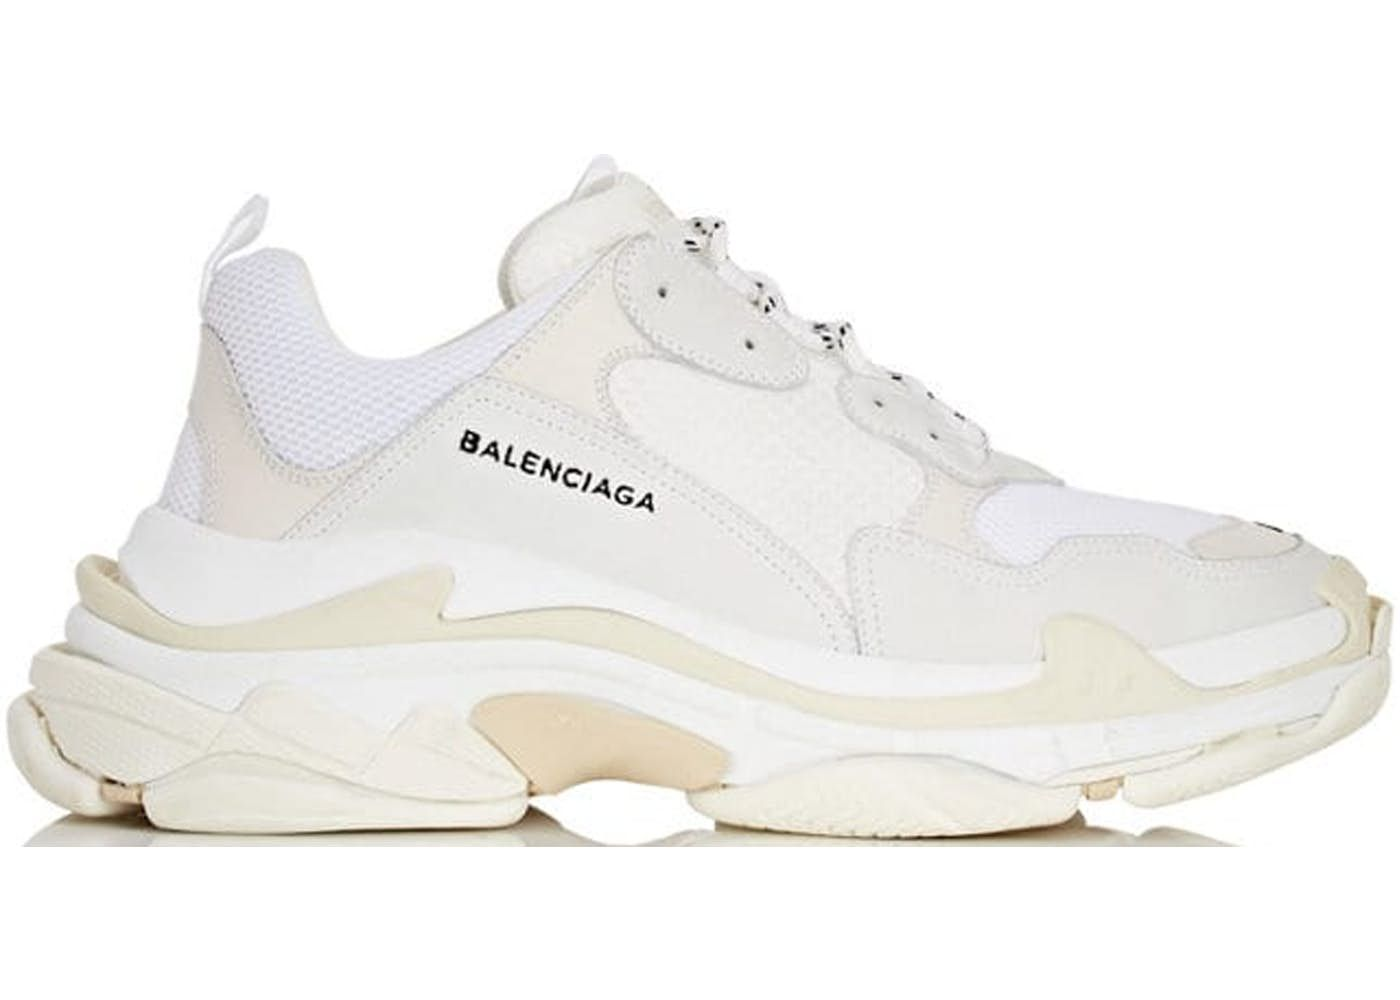 50e522214b What Your White Sneakers Say About You